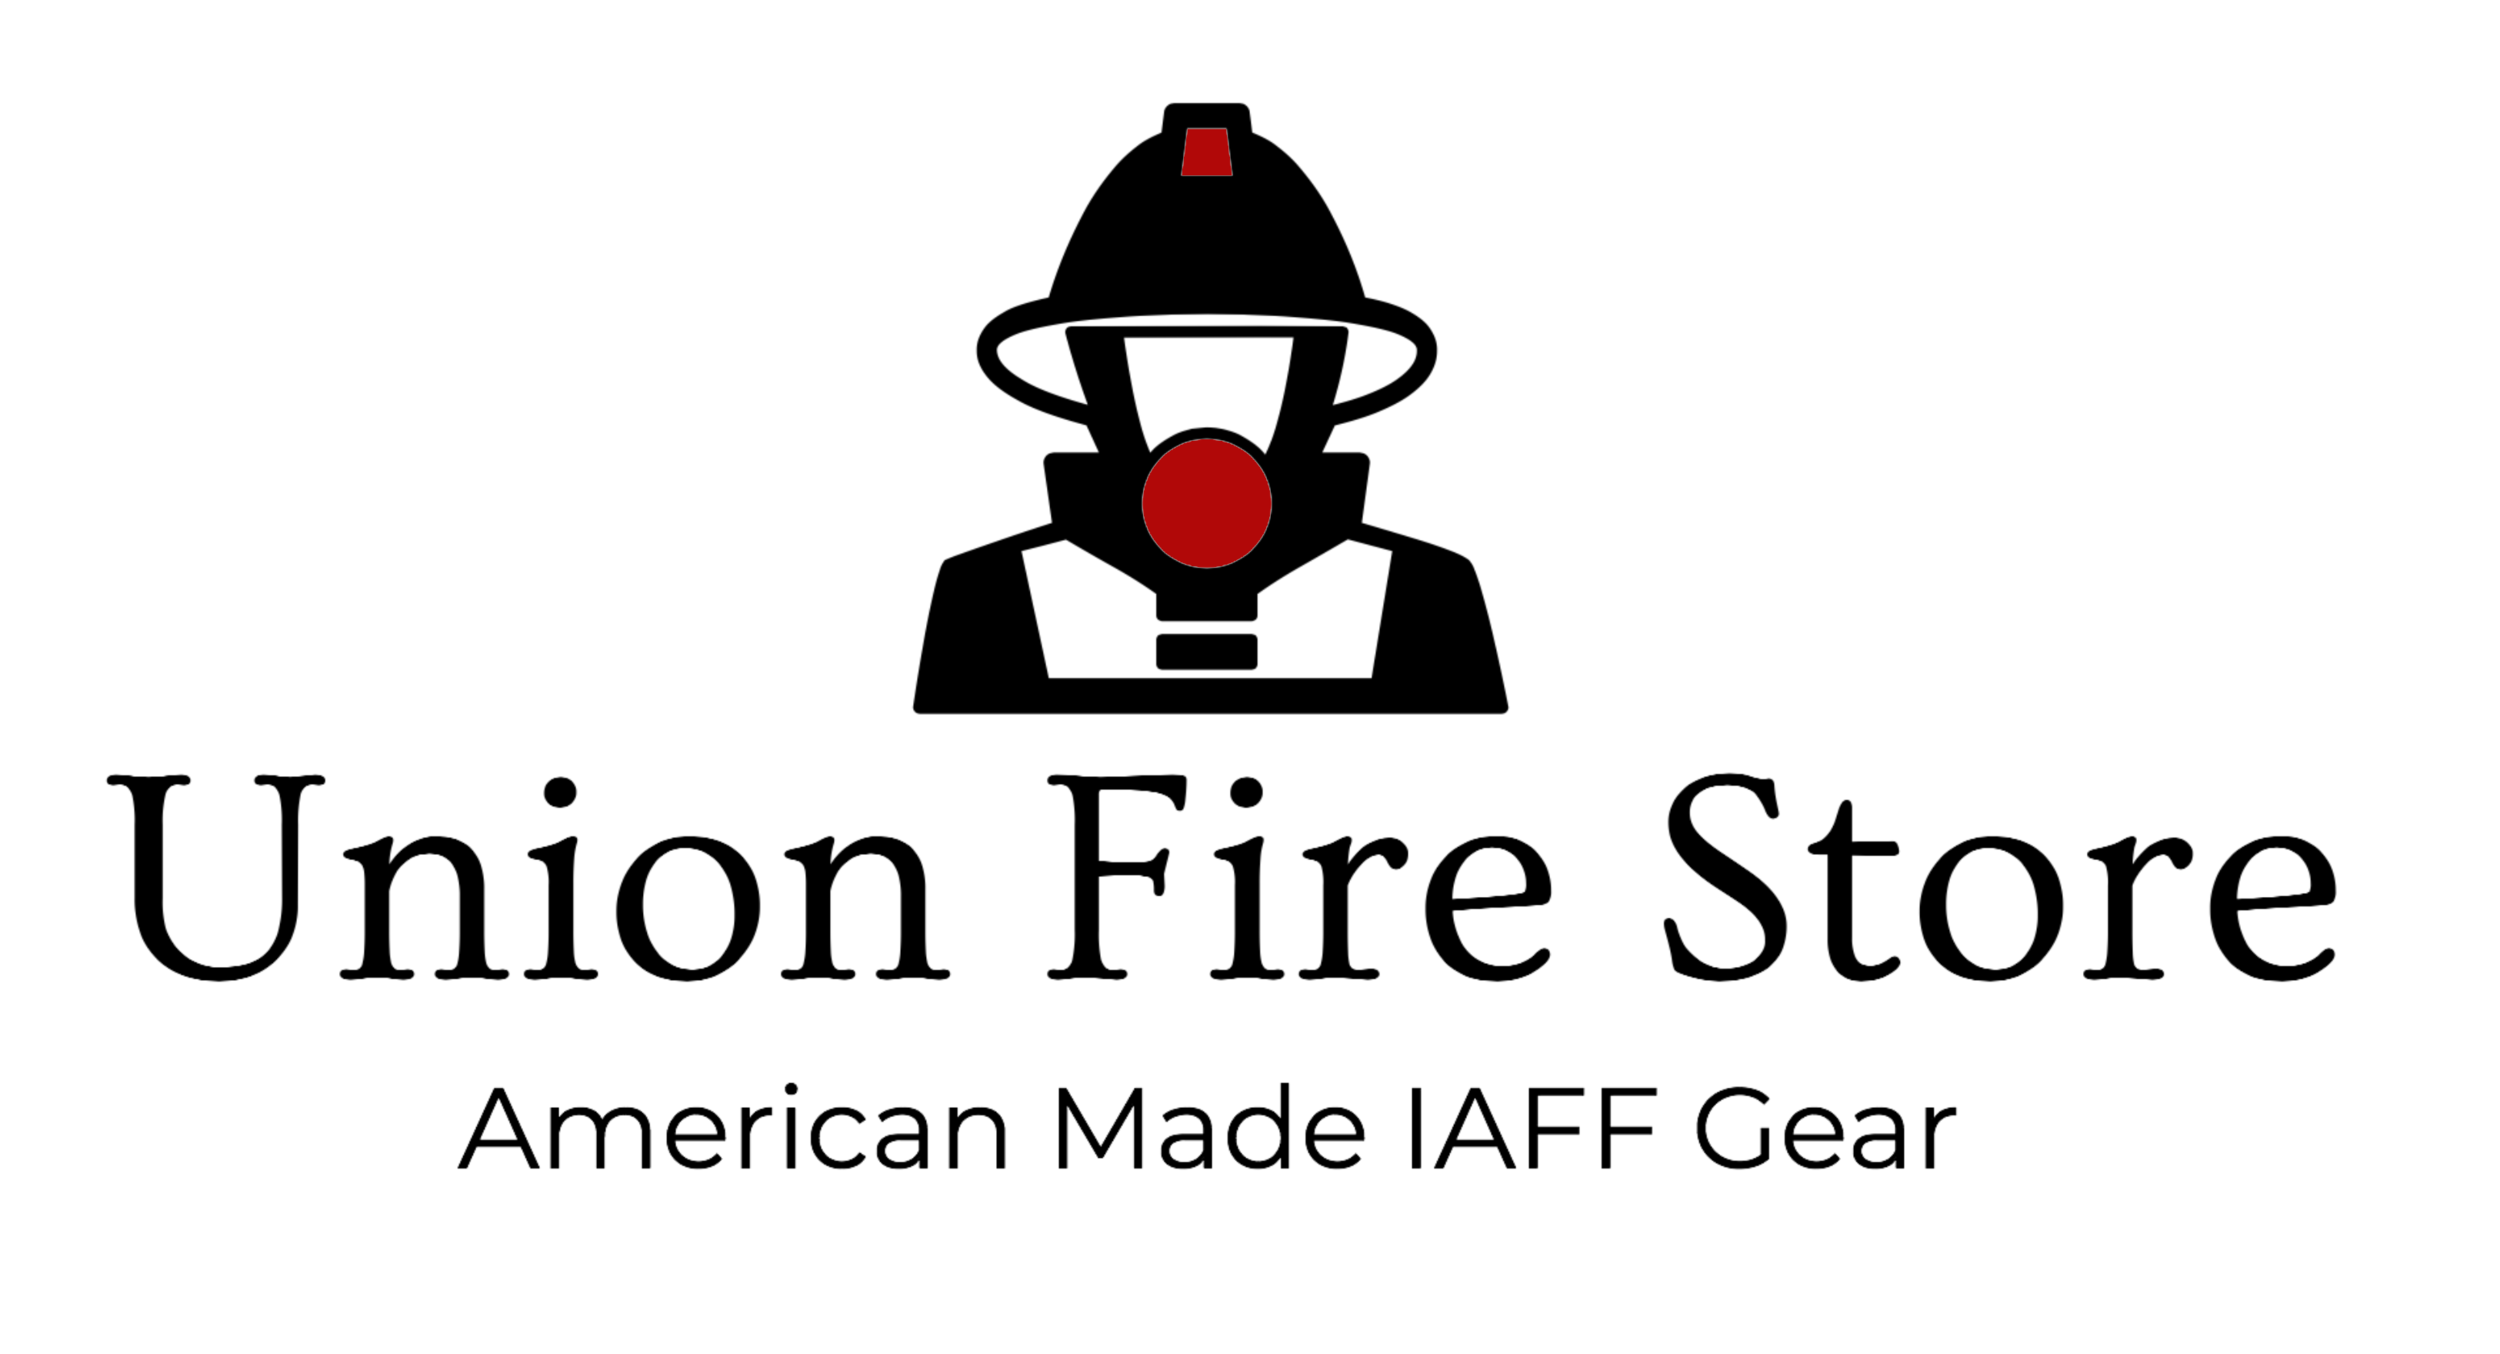 Union Fire Store